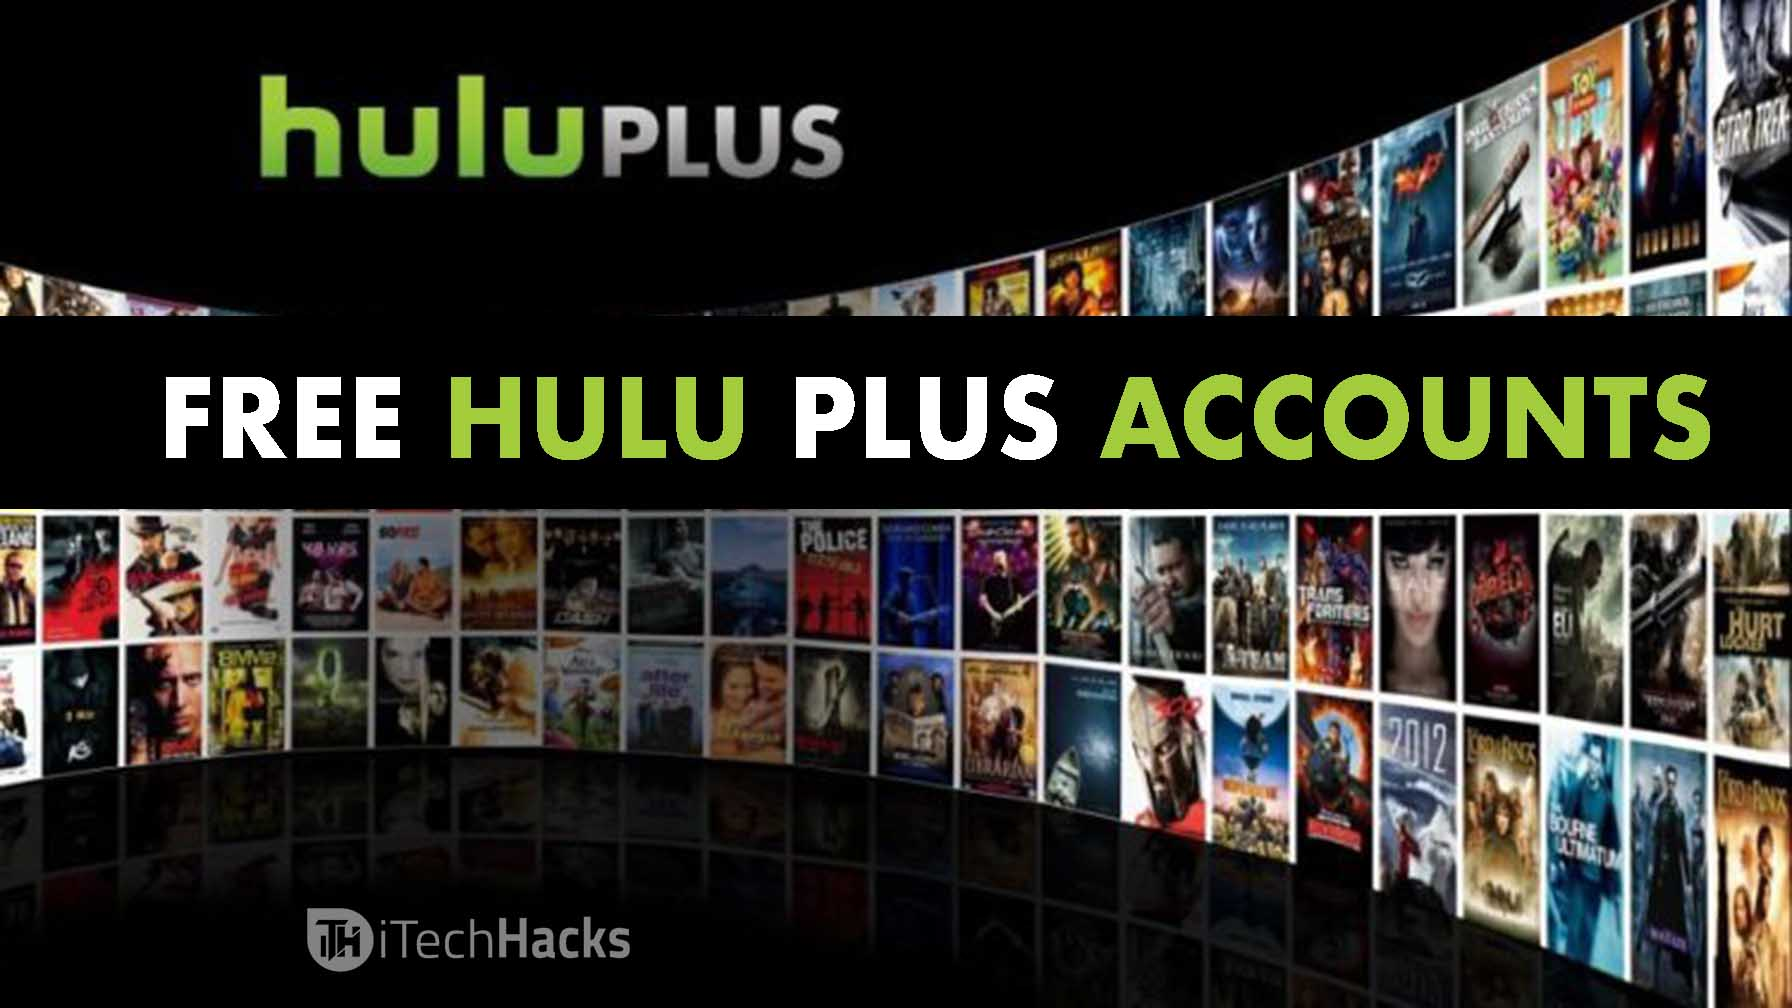 Free] Hulu Accounts and Paswords Witout Credit Cards (May 2018